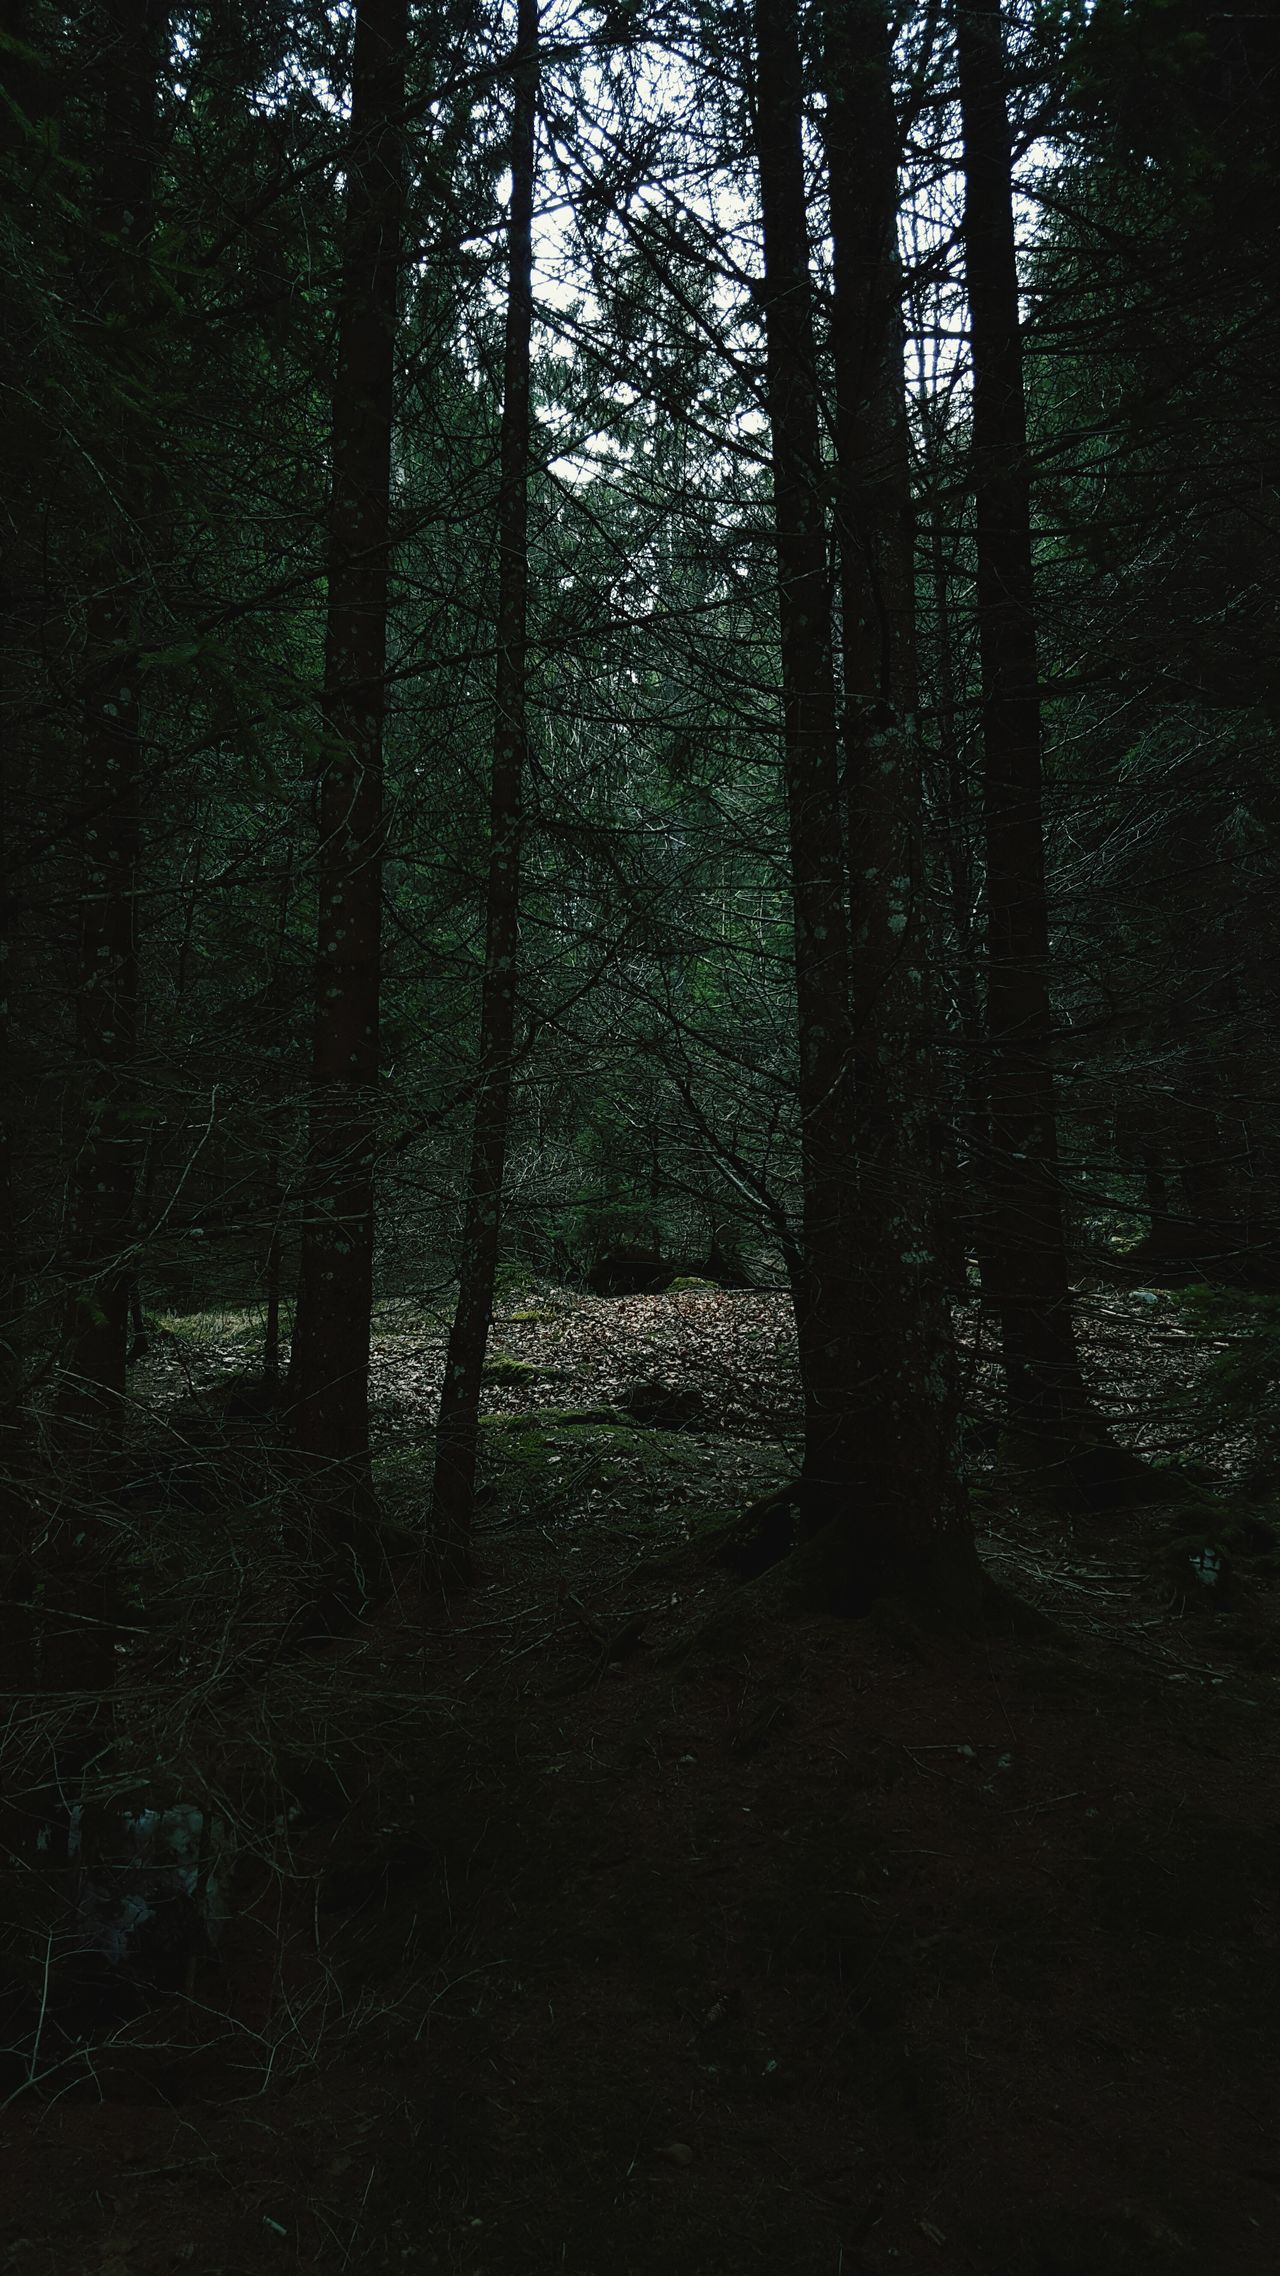 Forest pt. 2 Tree Nature Forest Tranquility Growth No People Tranquil Scene Beauty In Nature Landscape Outdoors Day Tree Trunk Darkness And Light Italy🇮🇹 Asiago Shooting Cellphone Photography Photography Nature Photography Photo Of The Day Trees Nature Trees And Nature Forest Photography Scenics